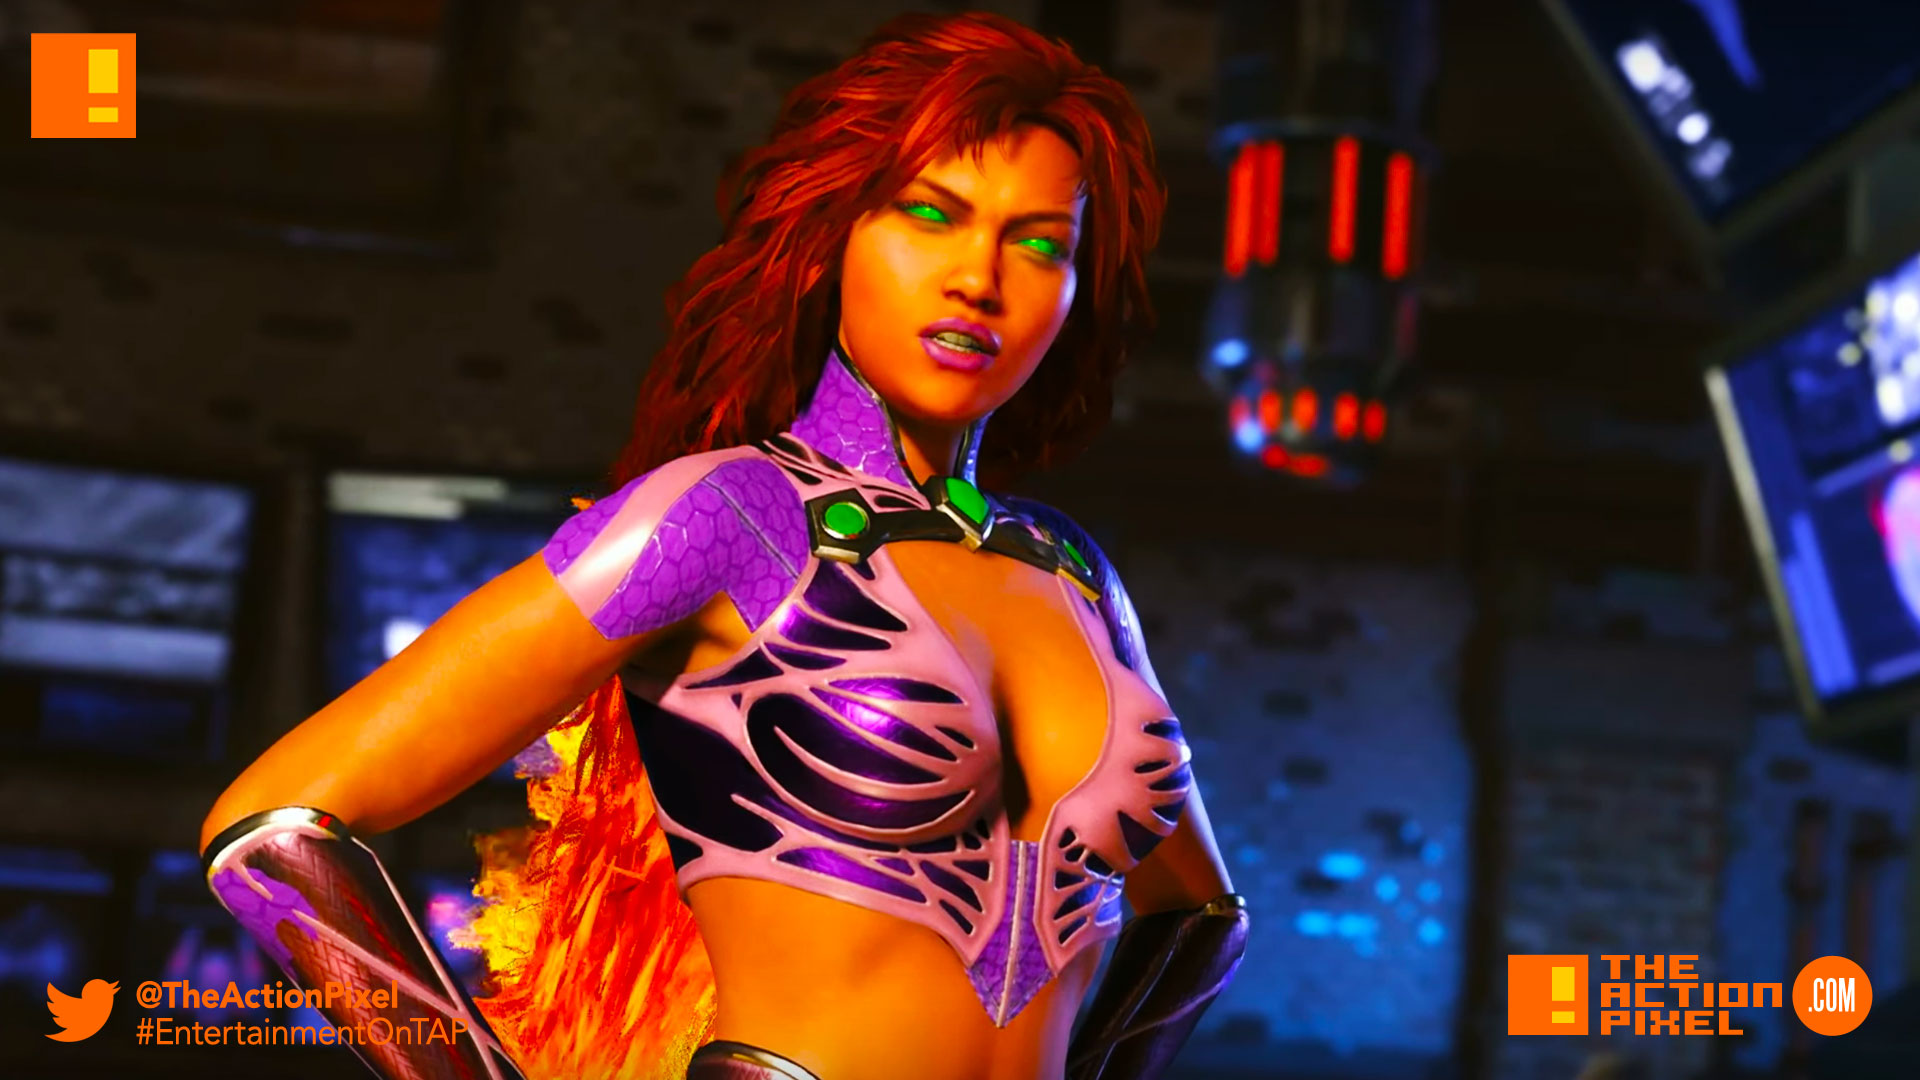 starfire, injustice 2, the action pixel, entertainment on tap, dulani wilson, netherrealm studios, wb games, dc comics, dc entertainment , warner bros. entertainment, warner bros., warner bros, tamaran, koriand'r,